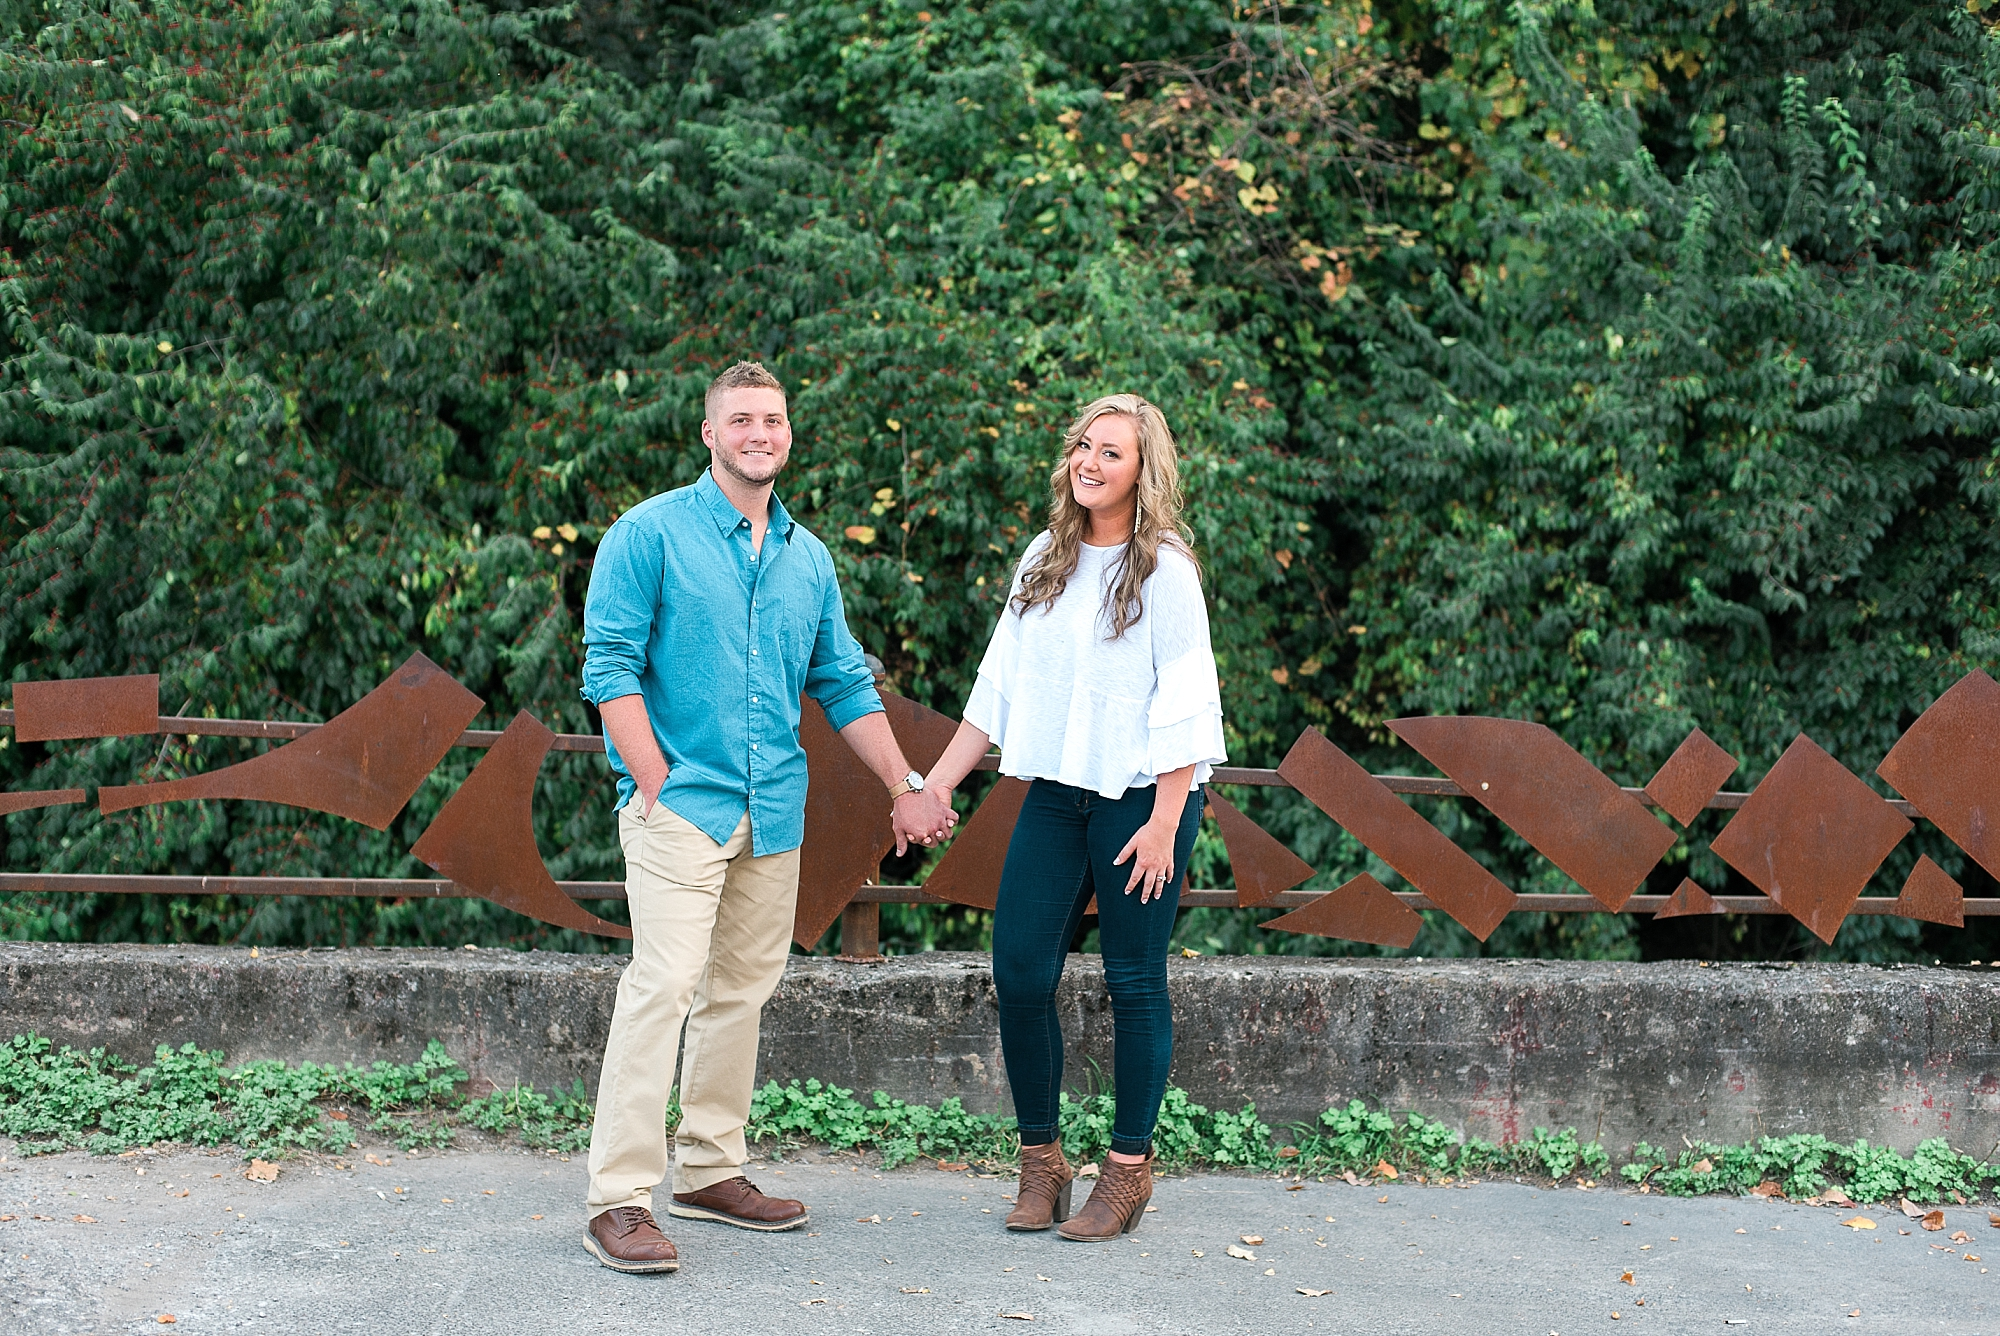 downtown-lex-engagement